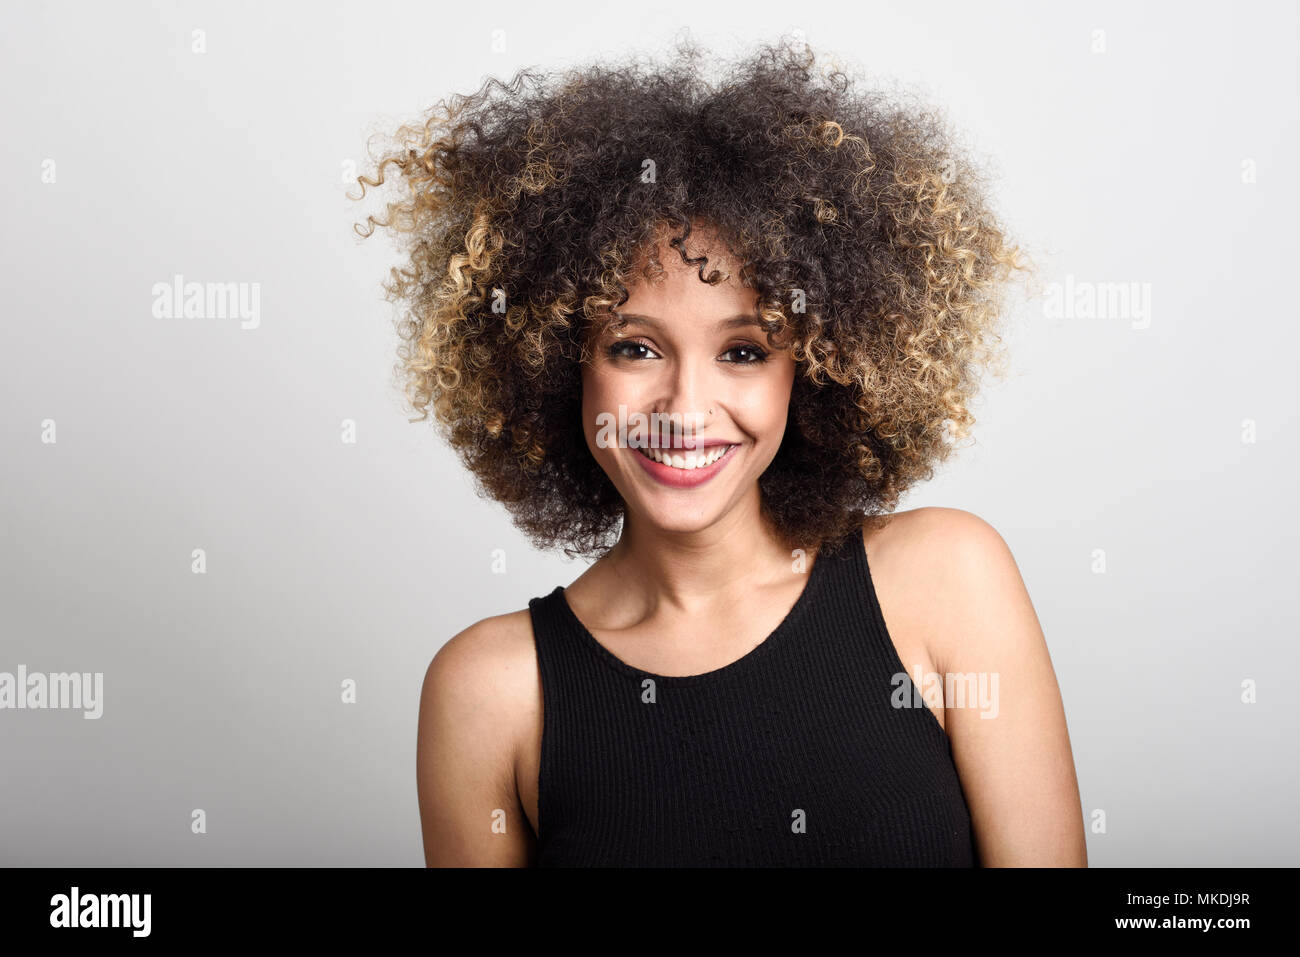 Young Black Woman With Afro Hairstyle Smiling Girl Wearing Black